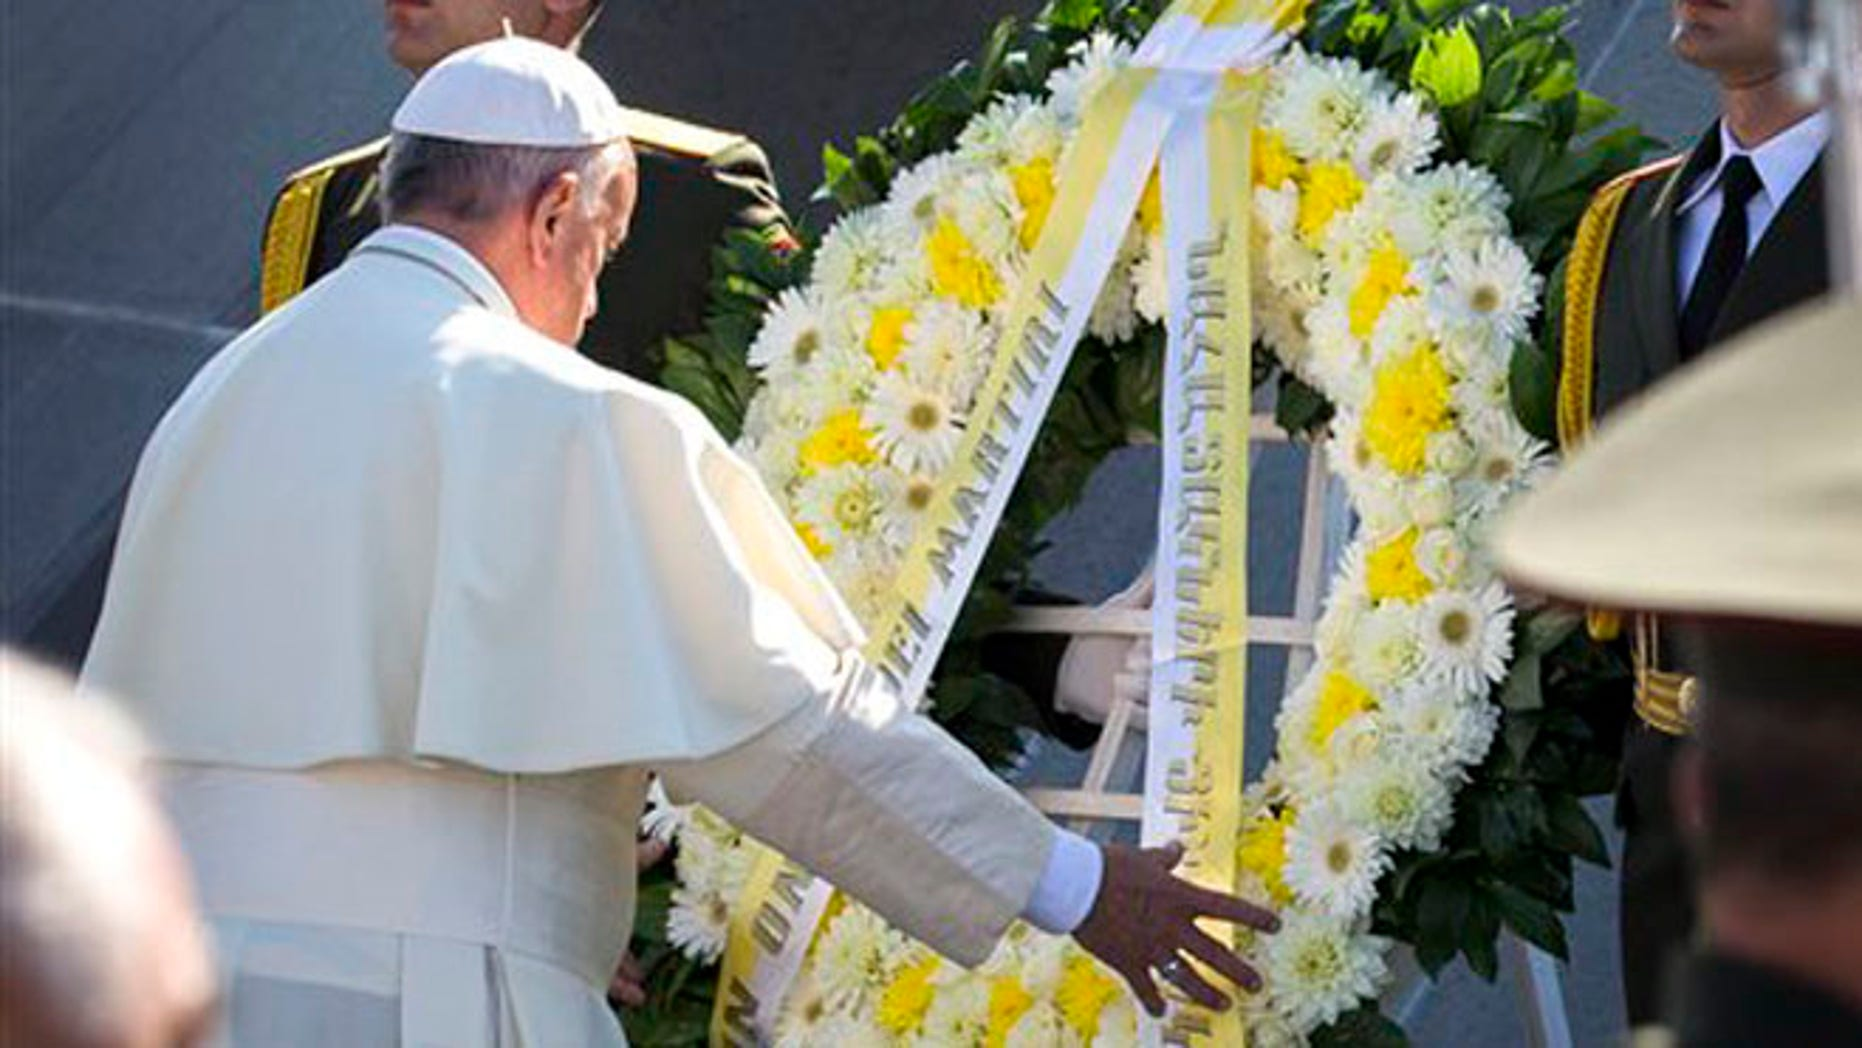 Pope Francis, left, attends a ceremony at a memorial to Armenians killed by the Ottoman Turks in Yerevan, Armenia, Saturday, June 25, 2016. Francis used another opportunity to pay respects to the victims of the slaughter when he visits Armenia's genocide memorial. (AP Photo/Alexander Zemlianichenko)